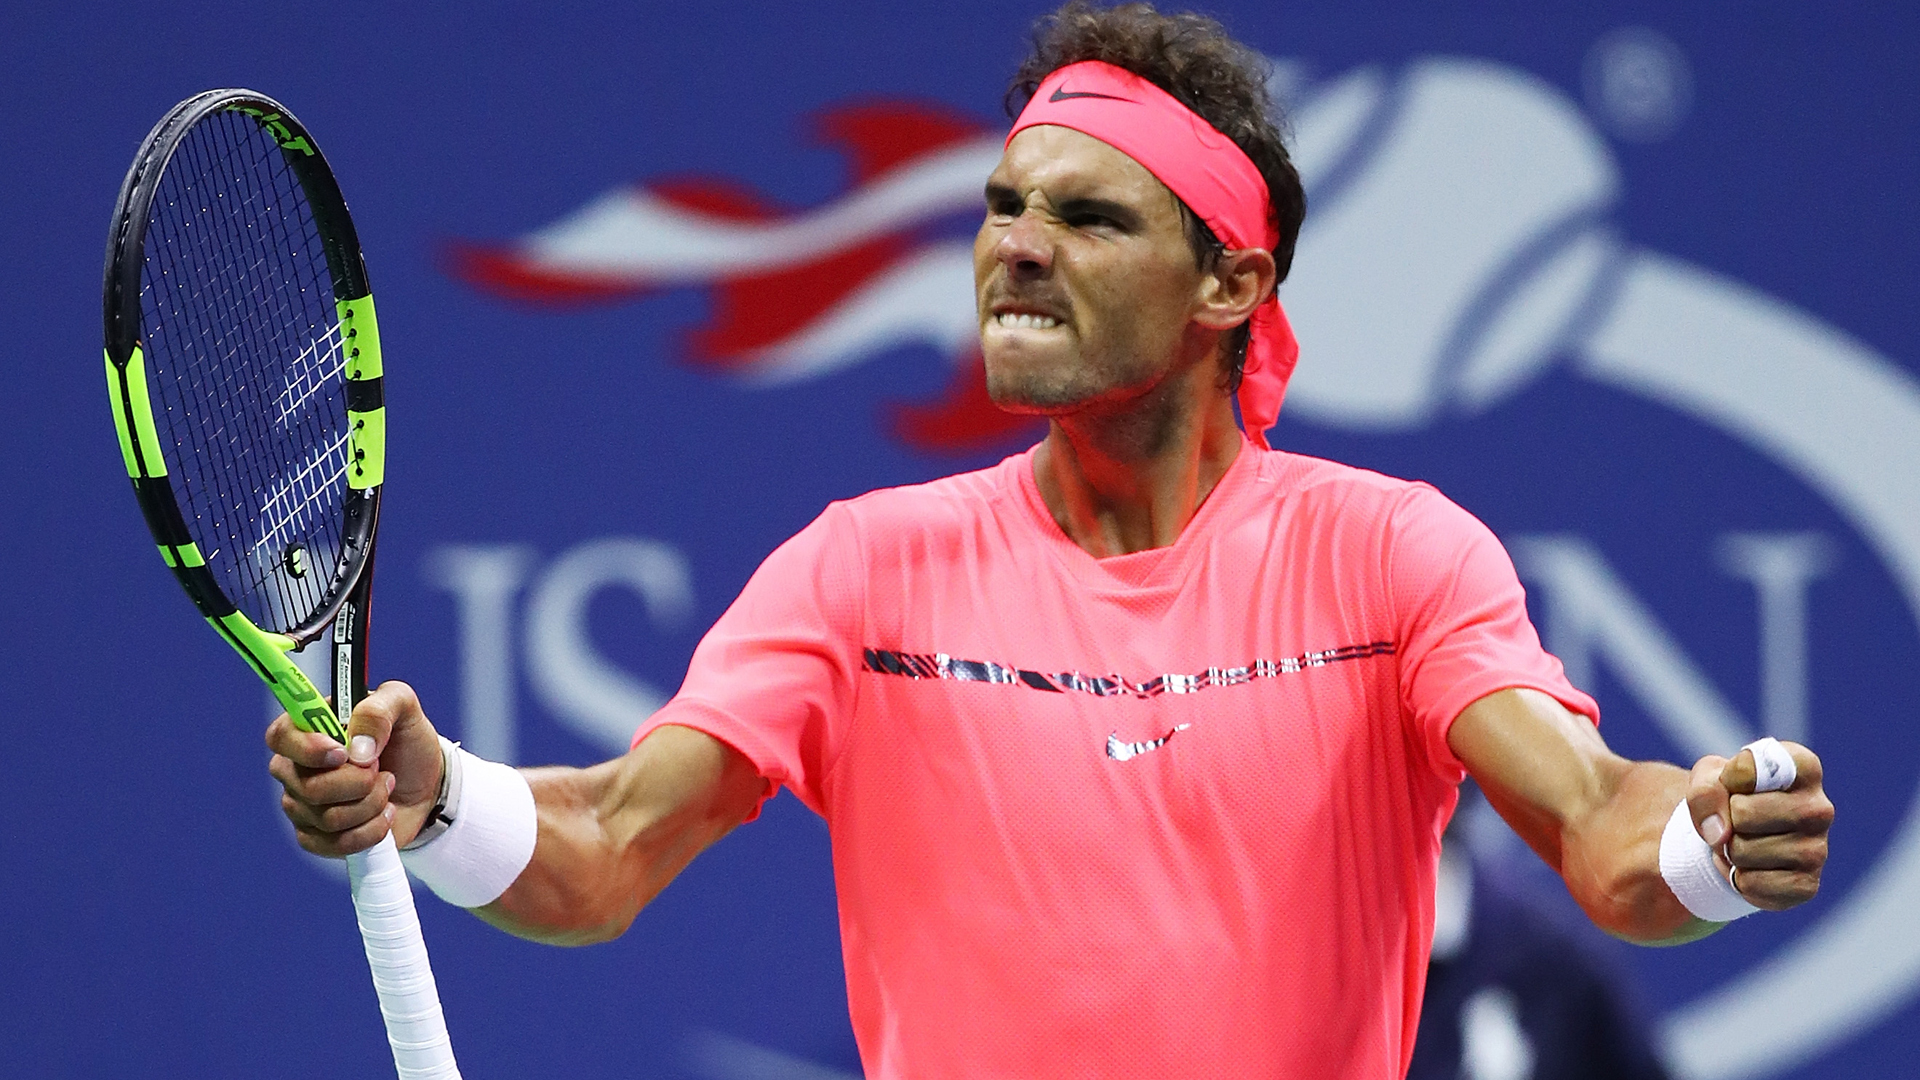 US Open 2017 Quarterfinals Schedule Includes Federer, Nadal, 4 American Women